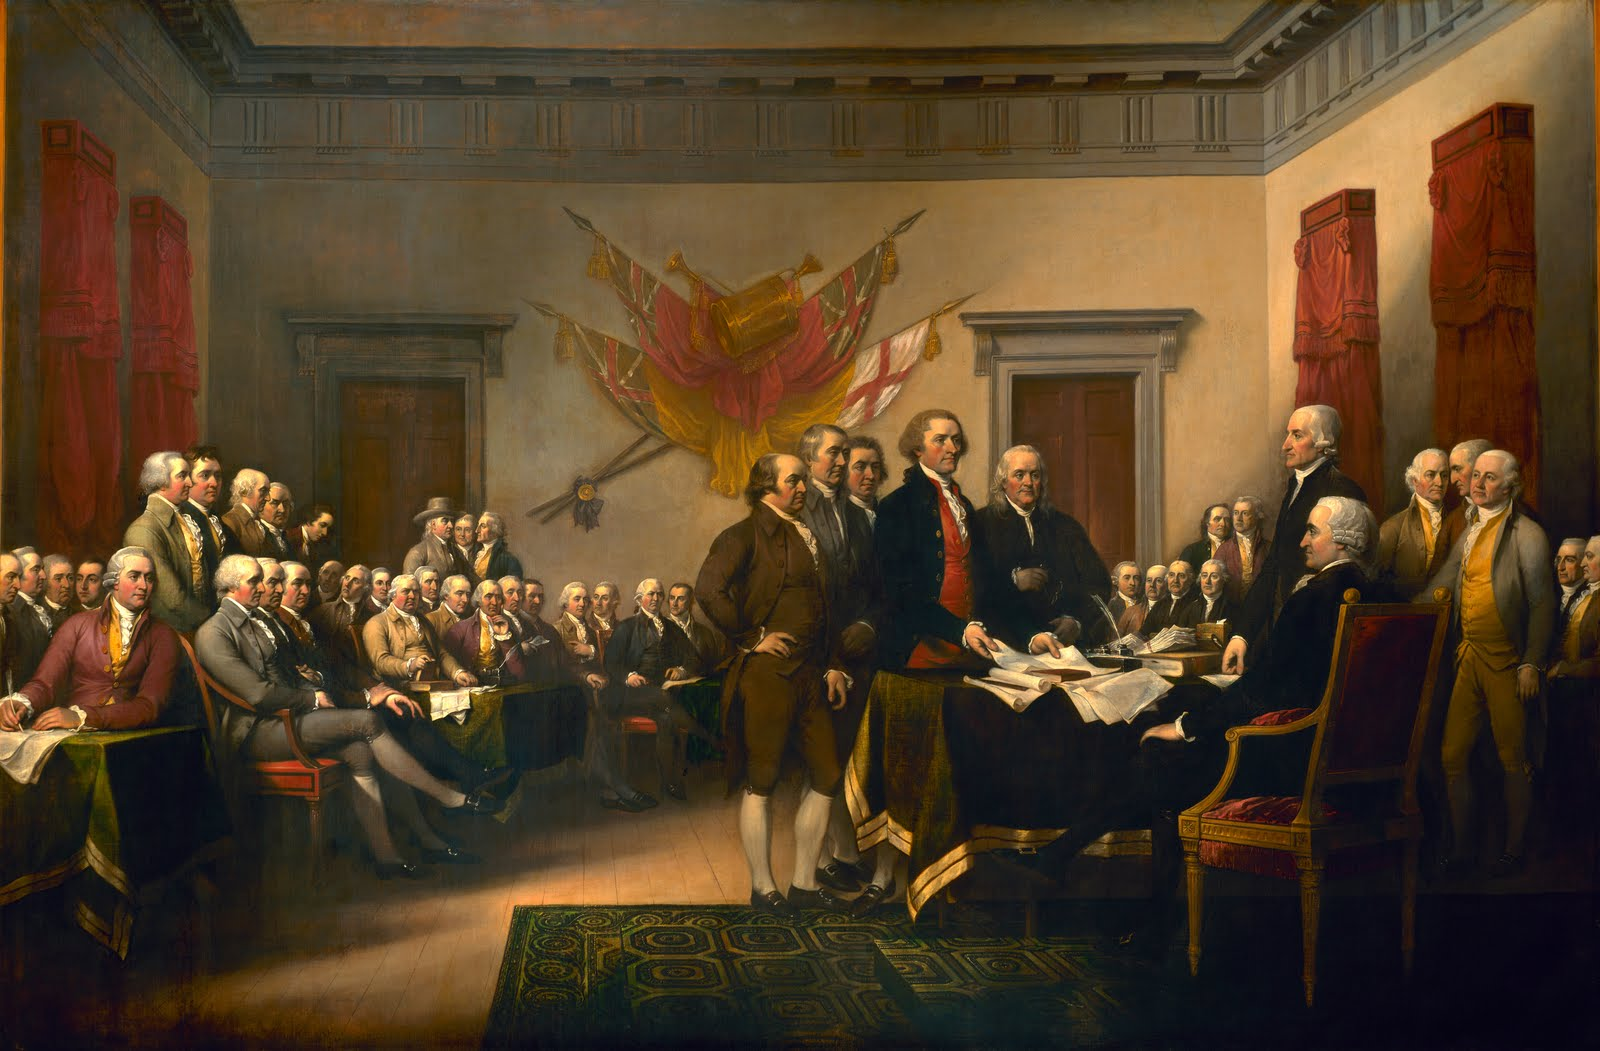 July 4th symbolizes what sets Americans apart from the rest of the globe: decisive action to improve our lives